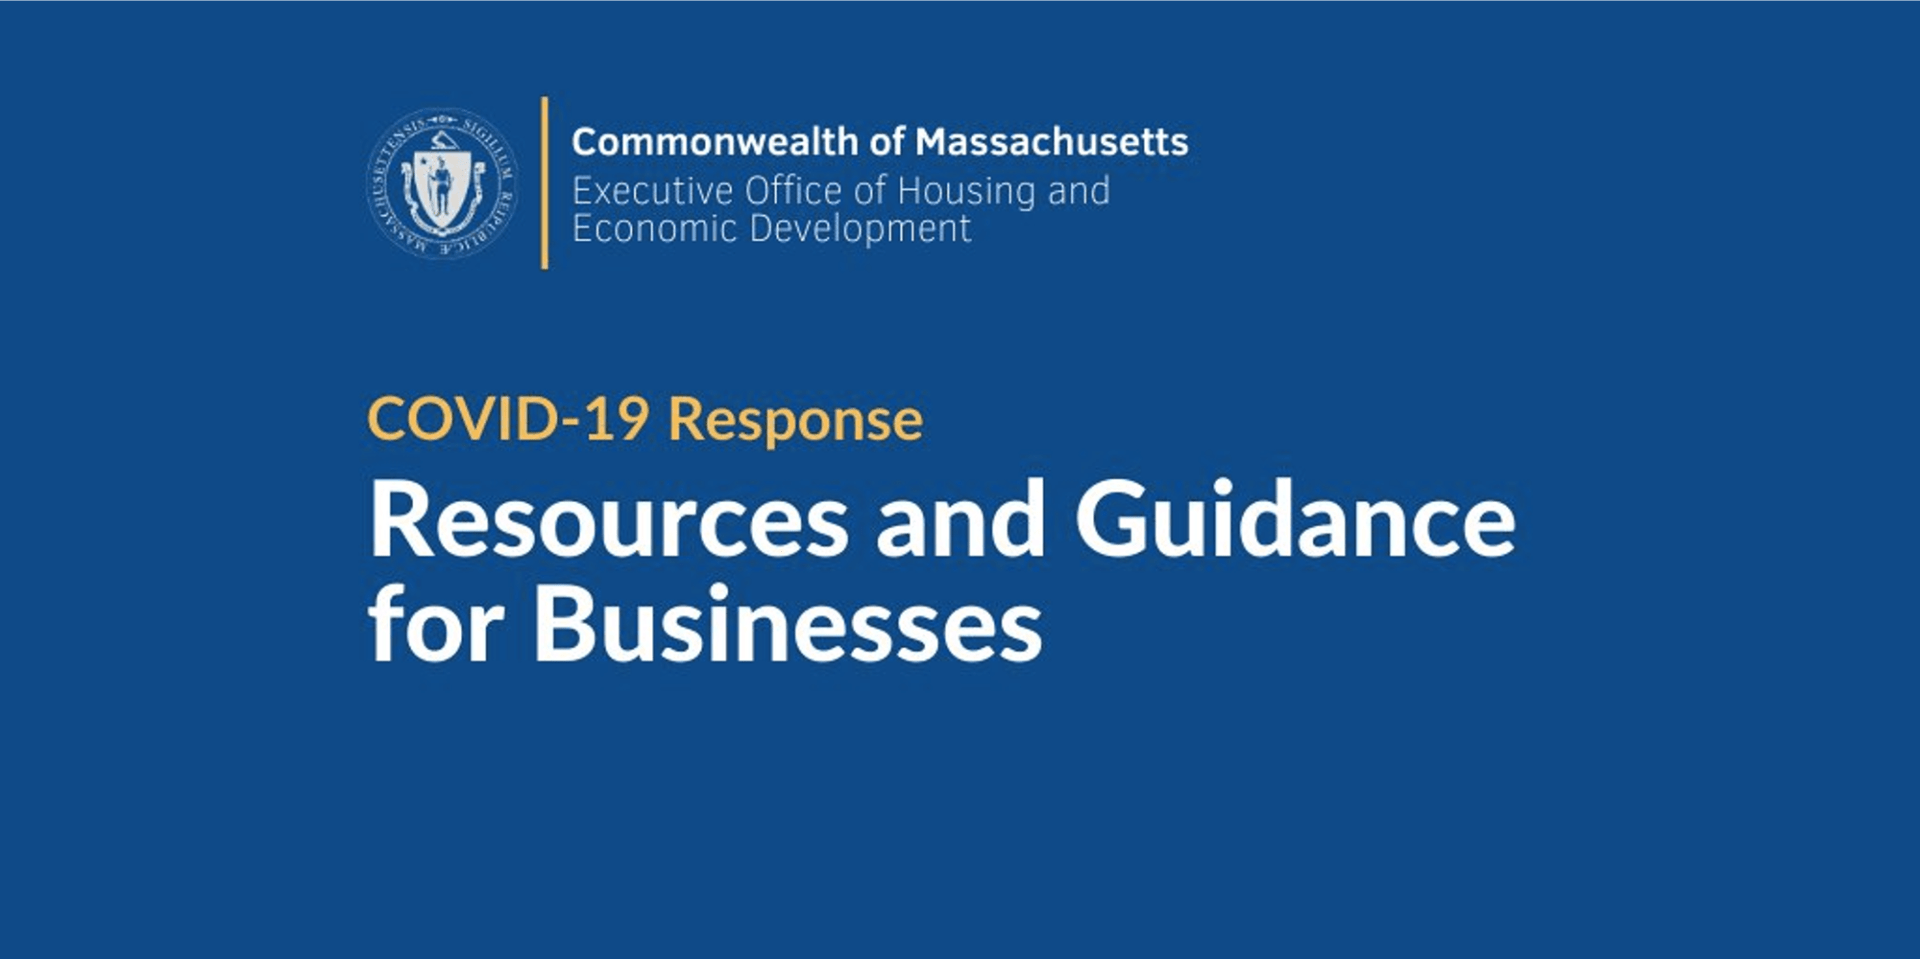 Resources-and-Guidance-w1920.png